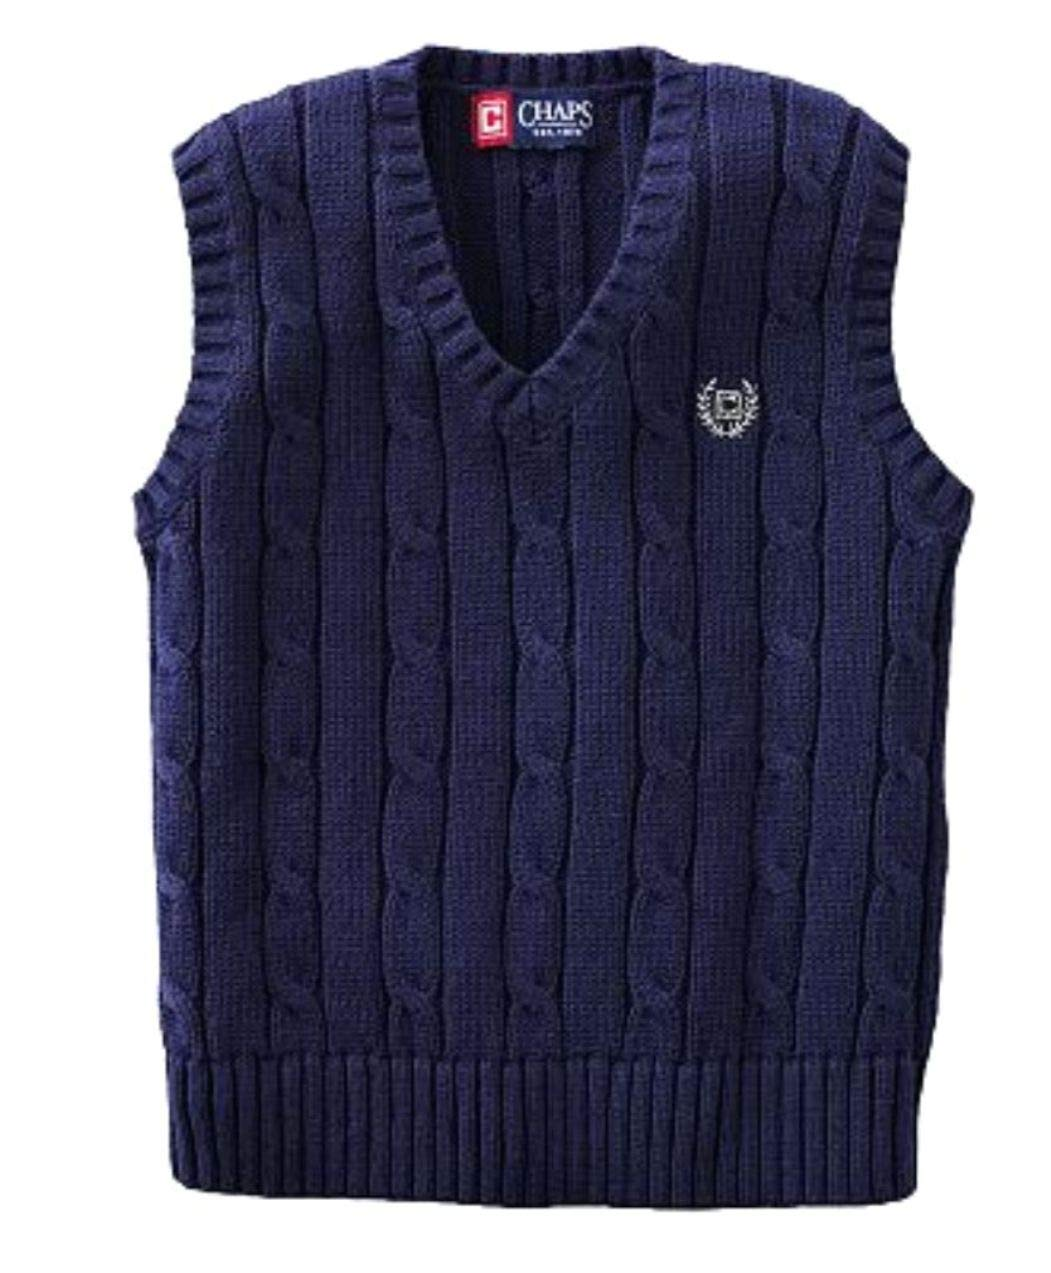 Chaps Cable-knit Sweater Vest - Boys (L (14-16))